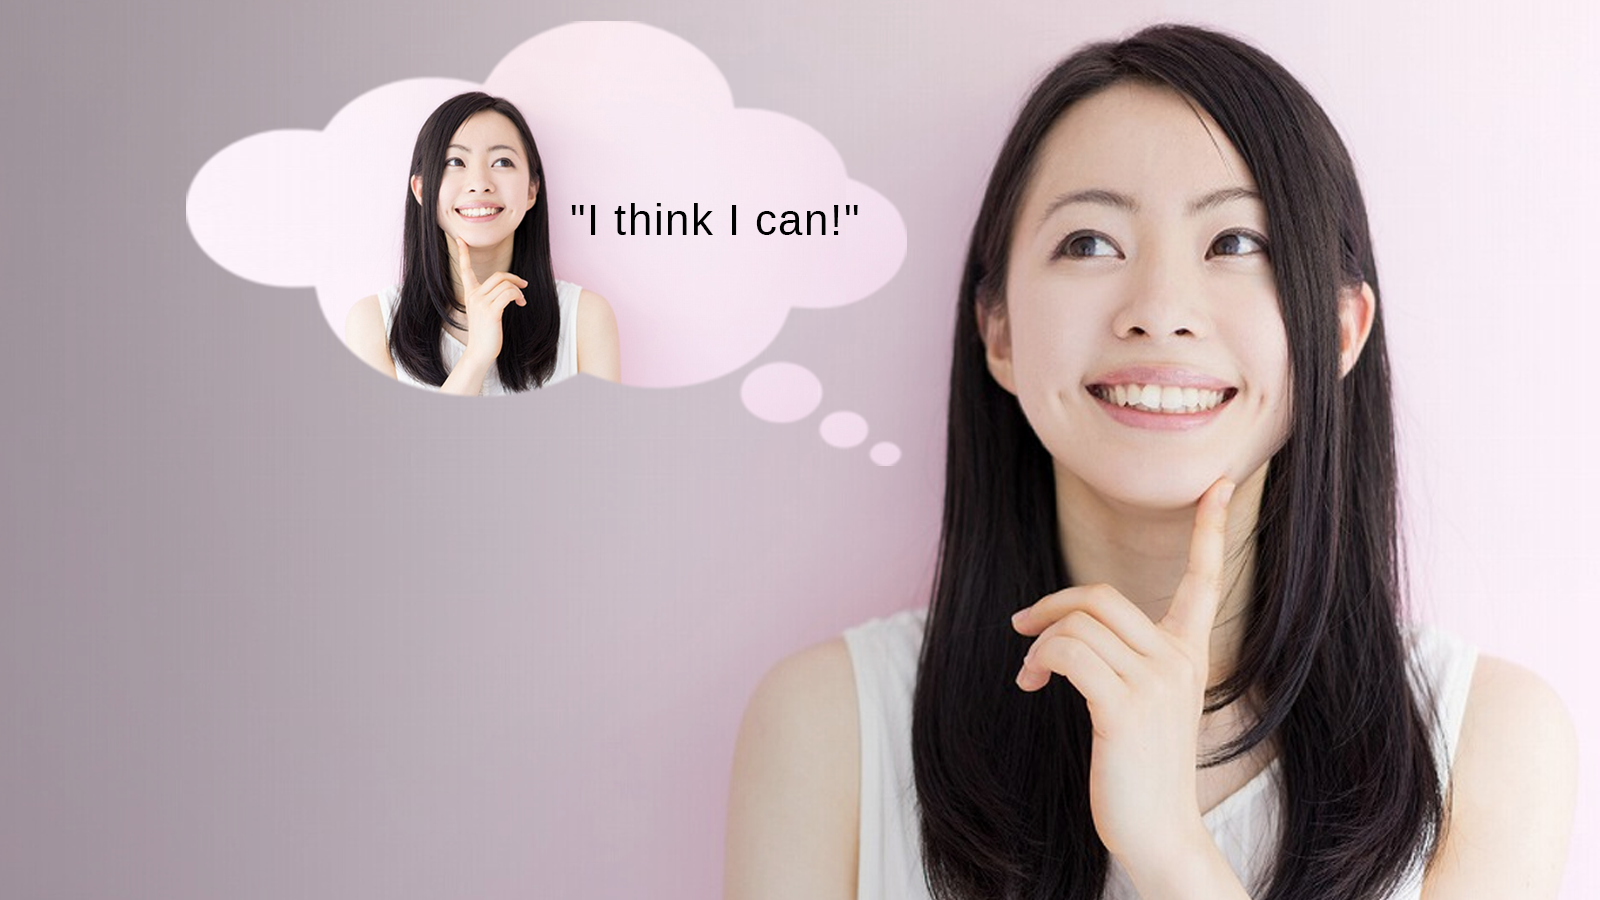 How to Use Self-talk to Boost Your Confidence?